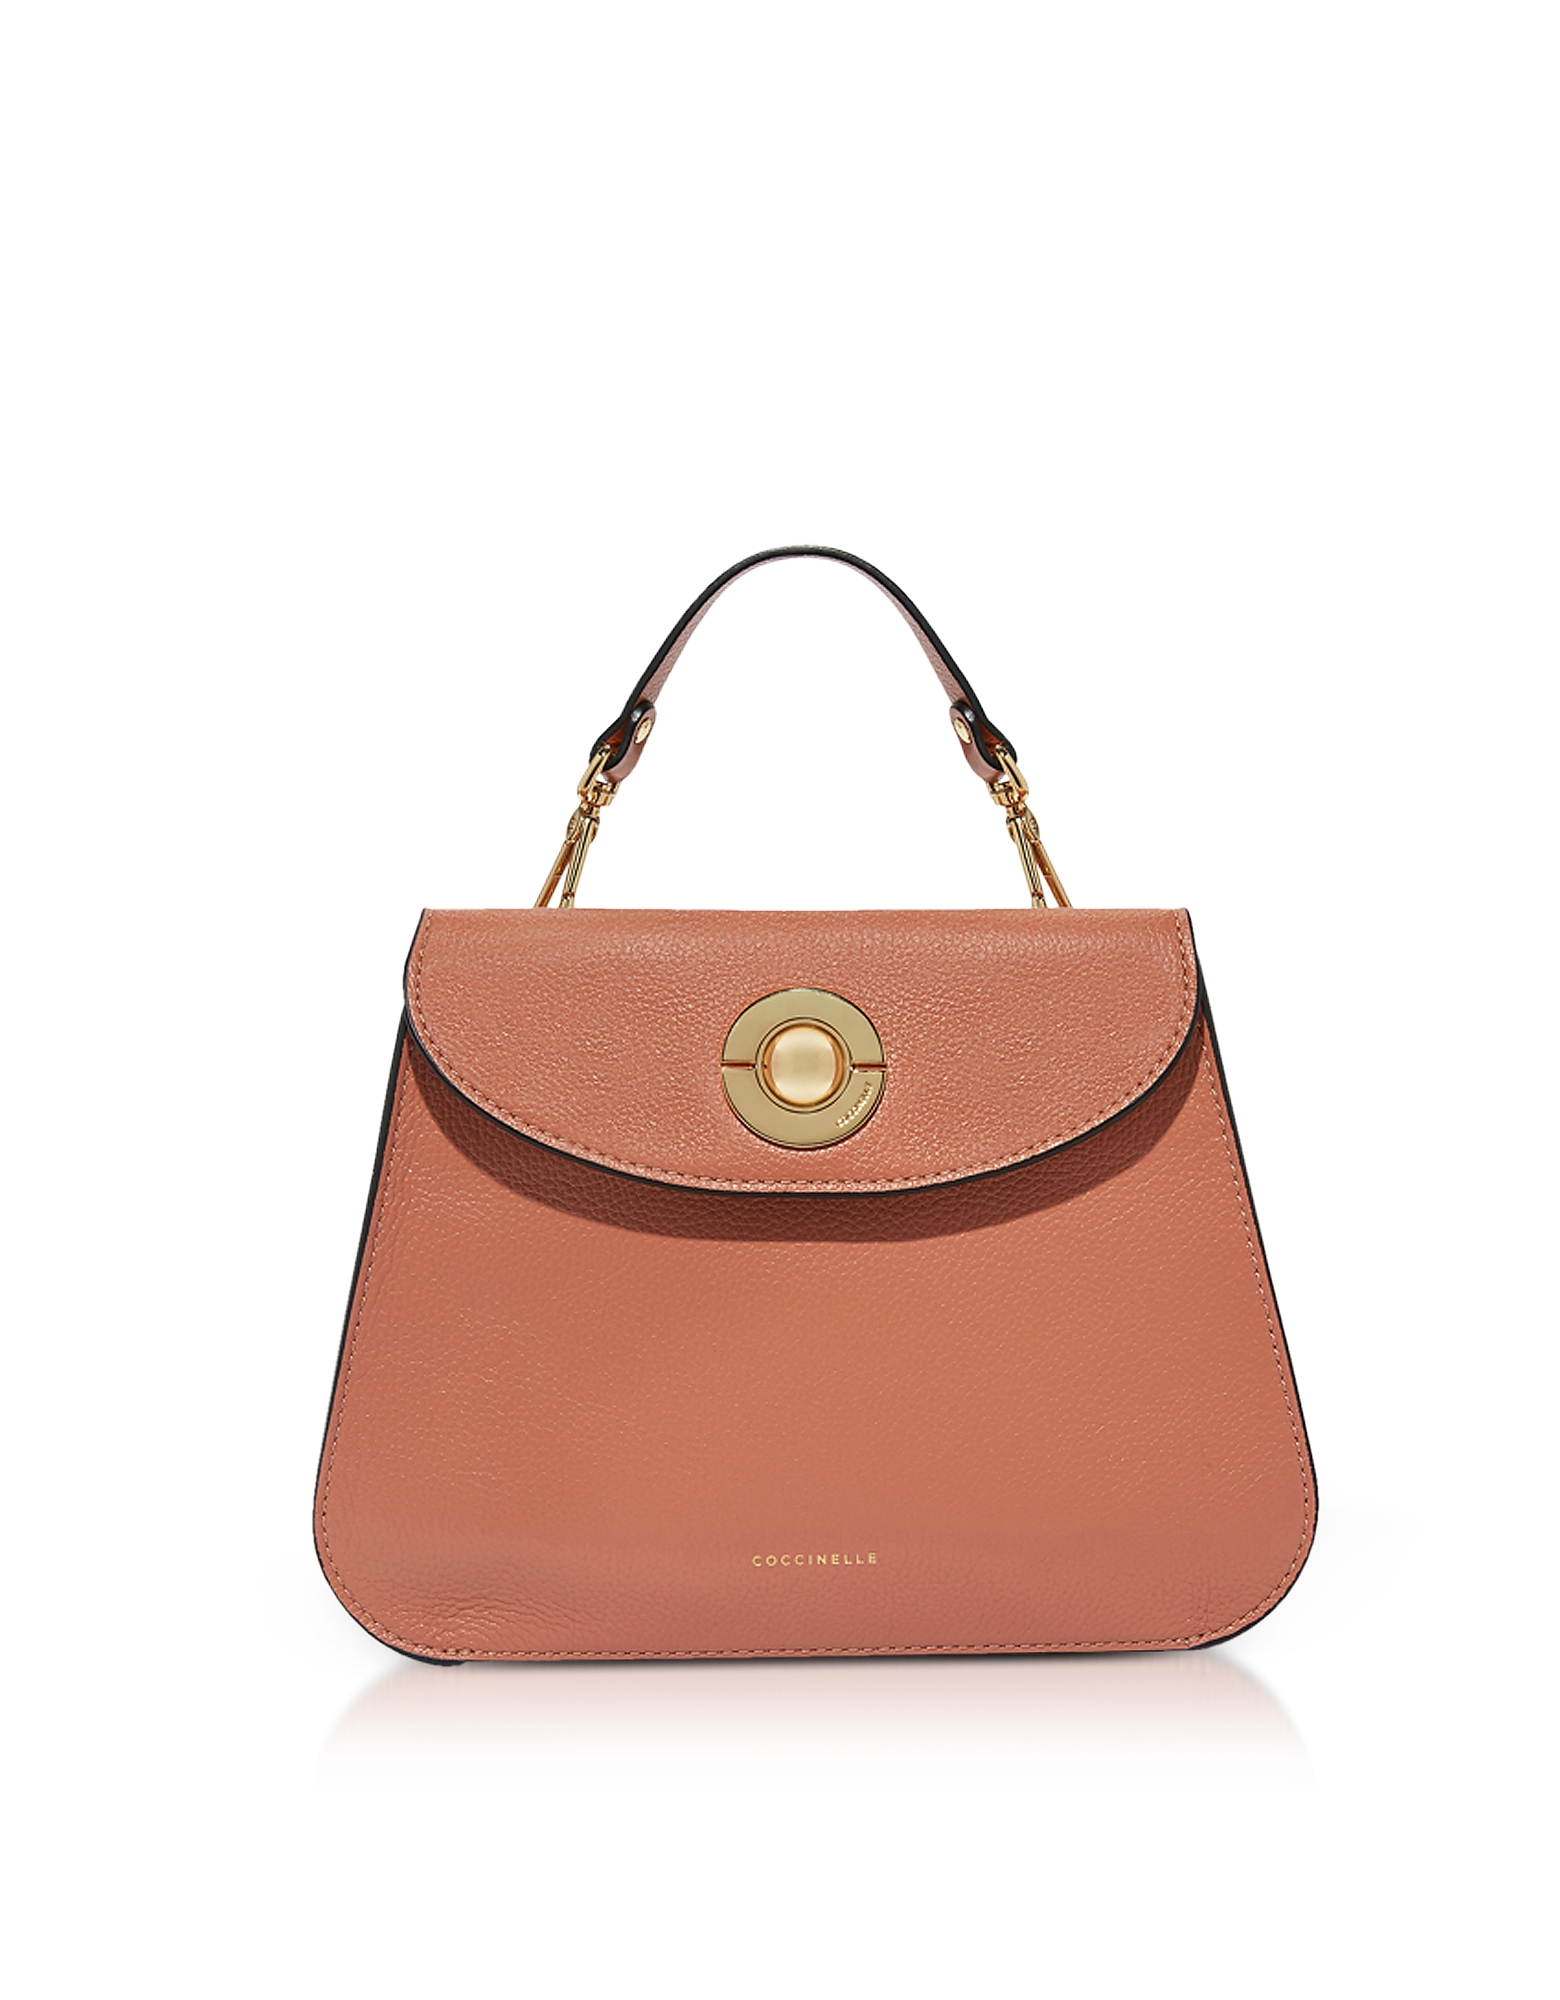 Coccinelle Handbags, Jalouse Leather Flat Shoulder Bag